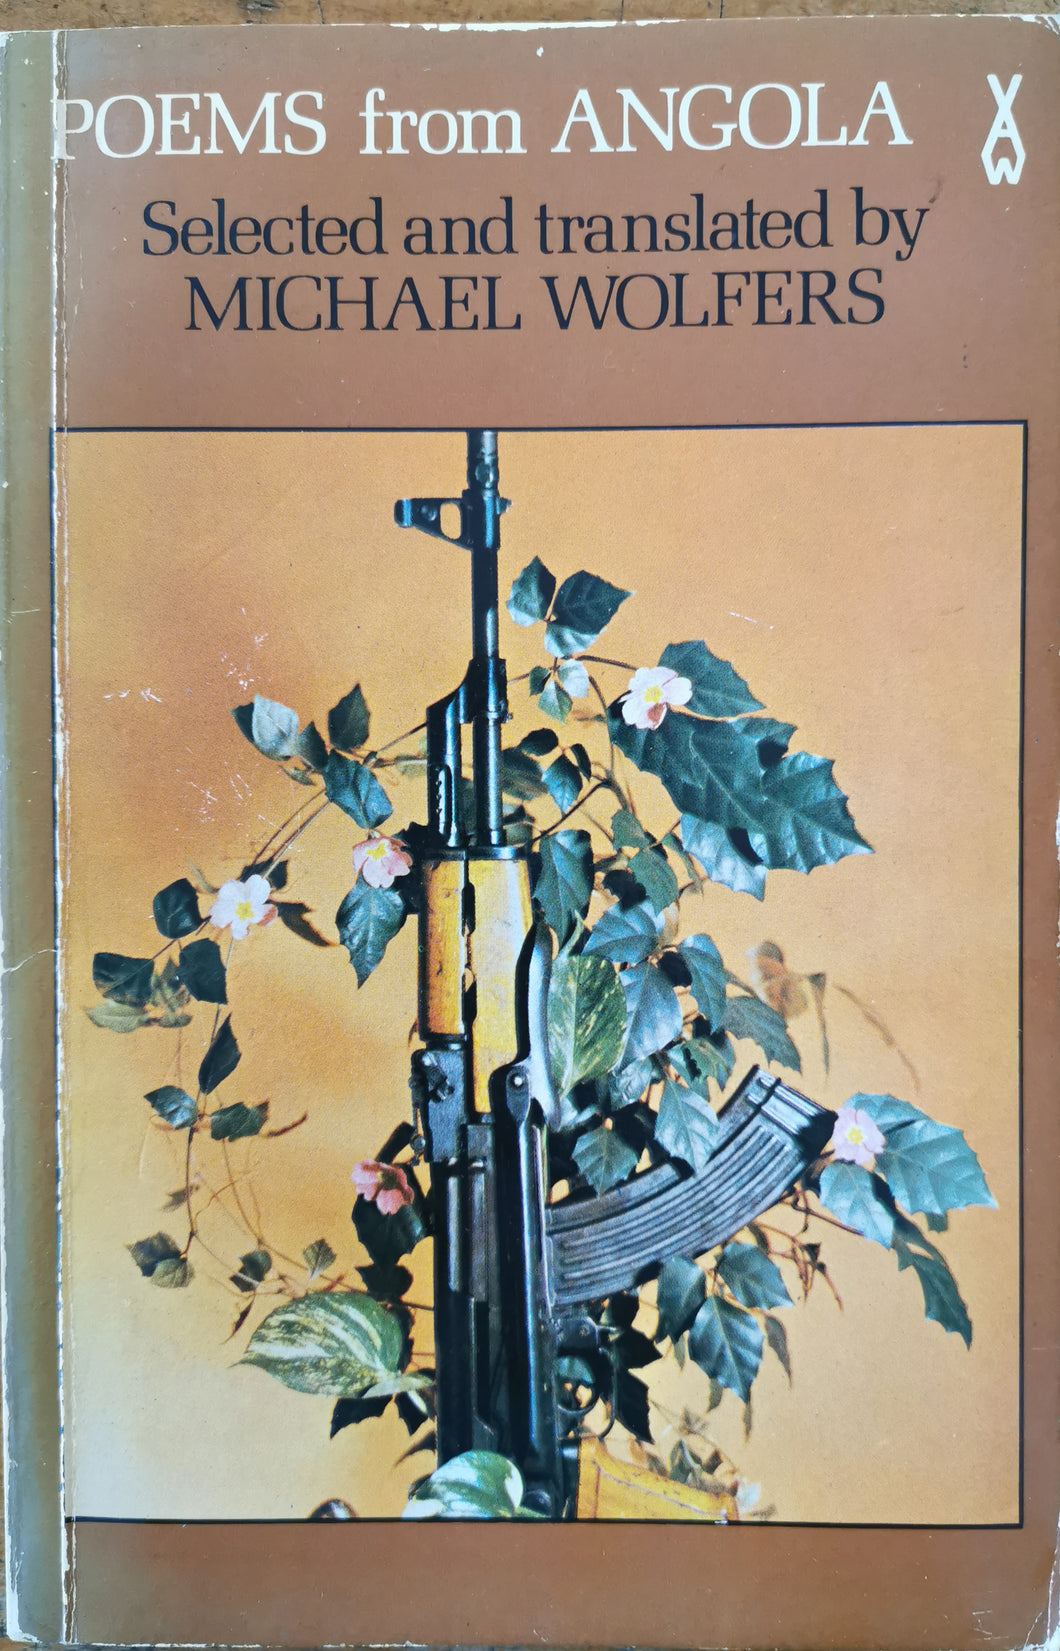 Poems from Angola - Michael Wolfers